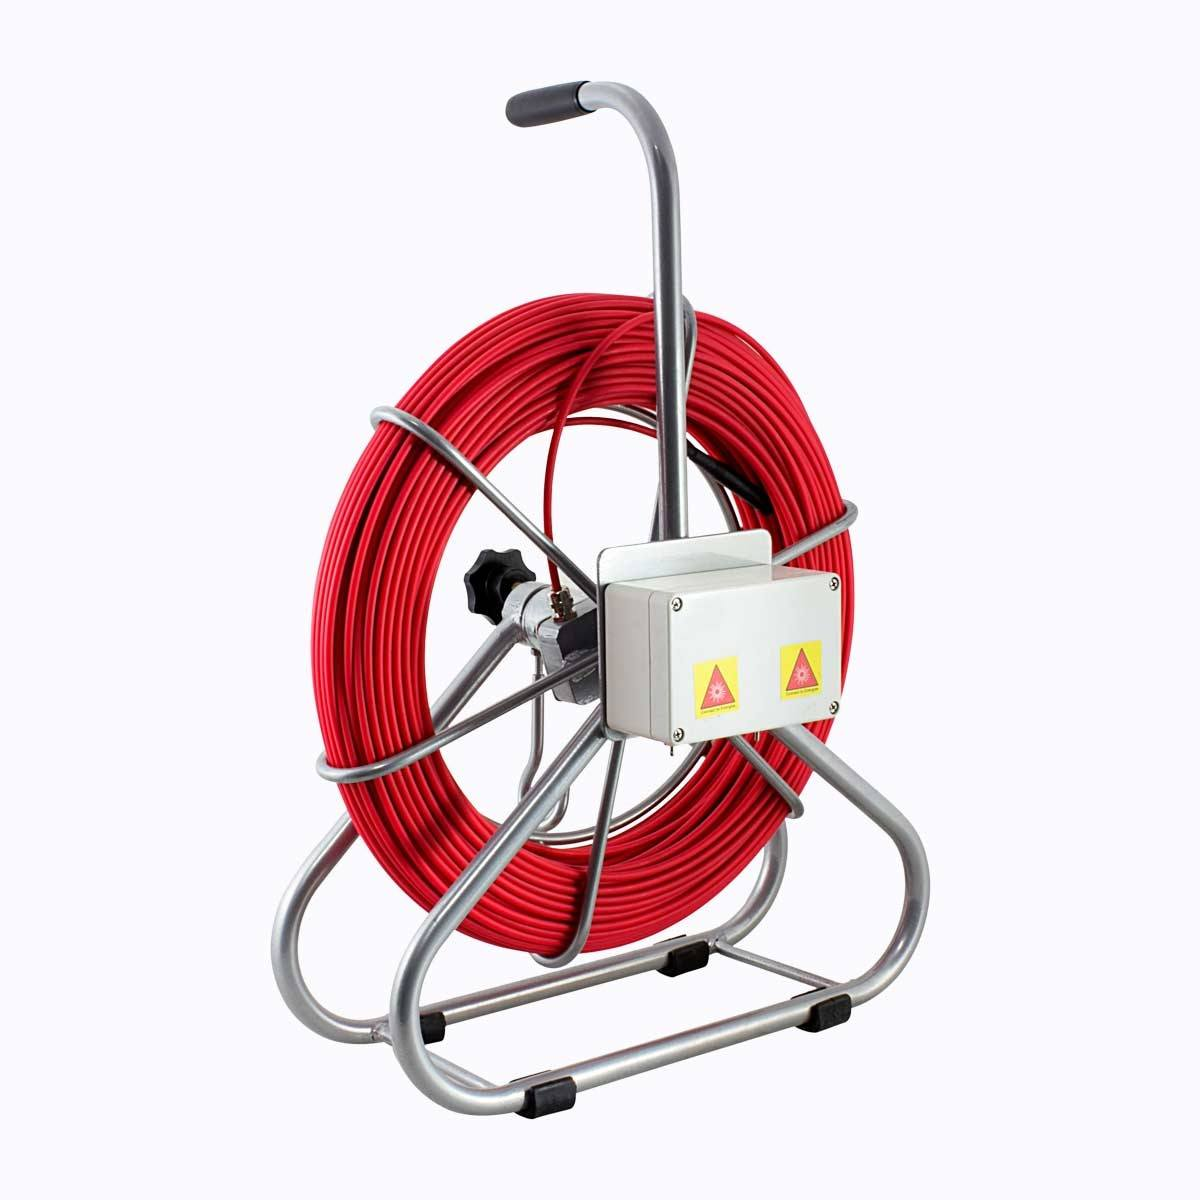 Wire Locator Rental : Pipe locator rod attach mtr for rent kennards hire